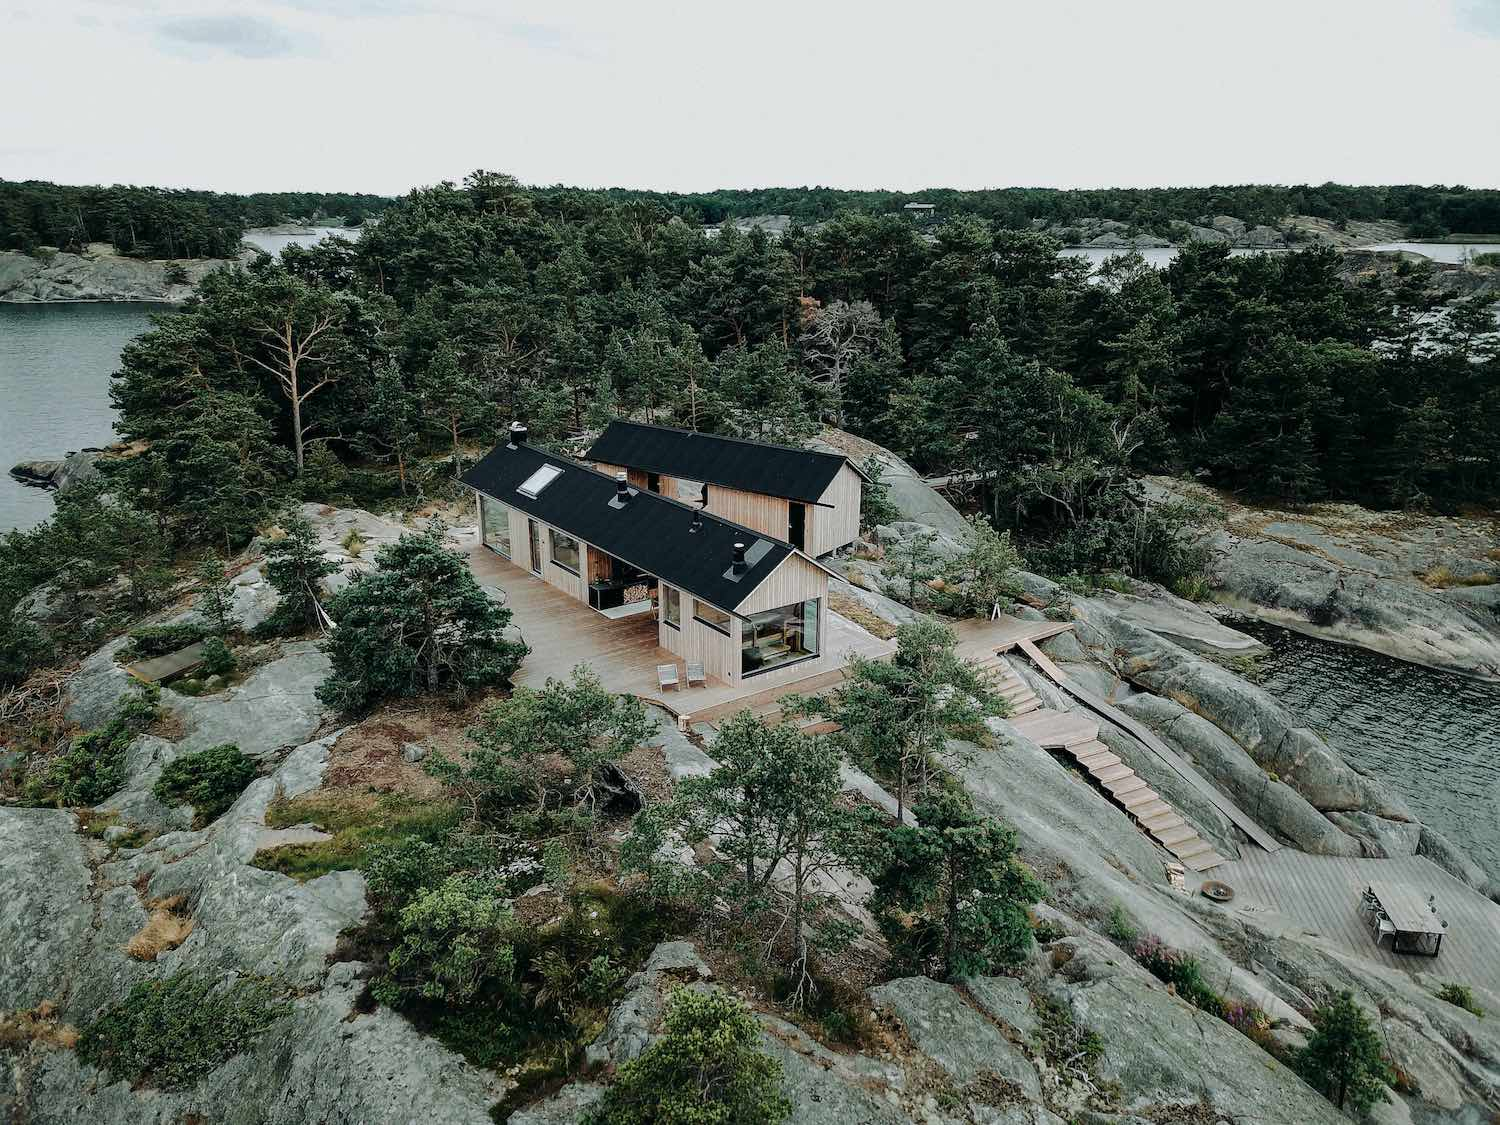 two cabins in a rocky island in Finland